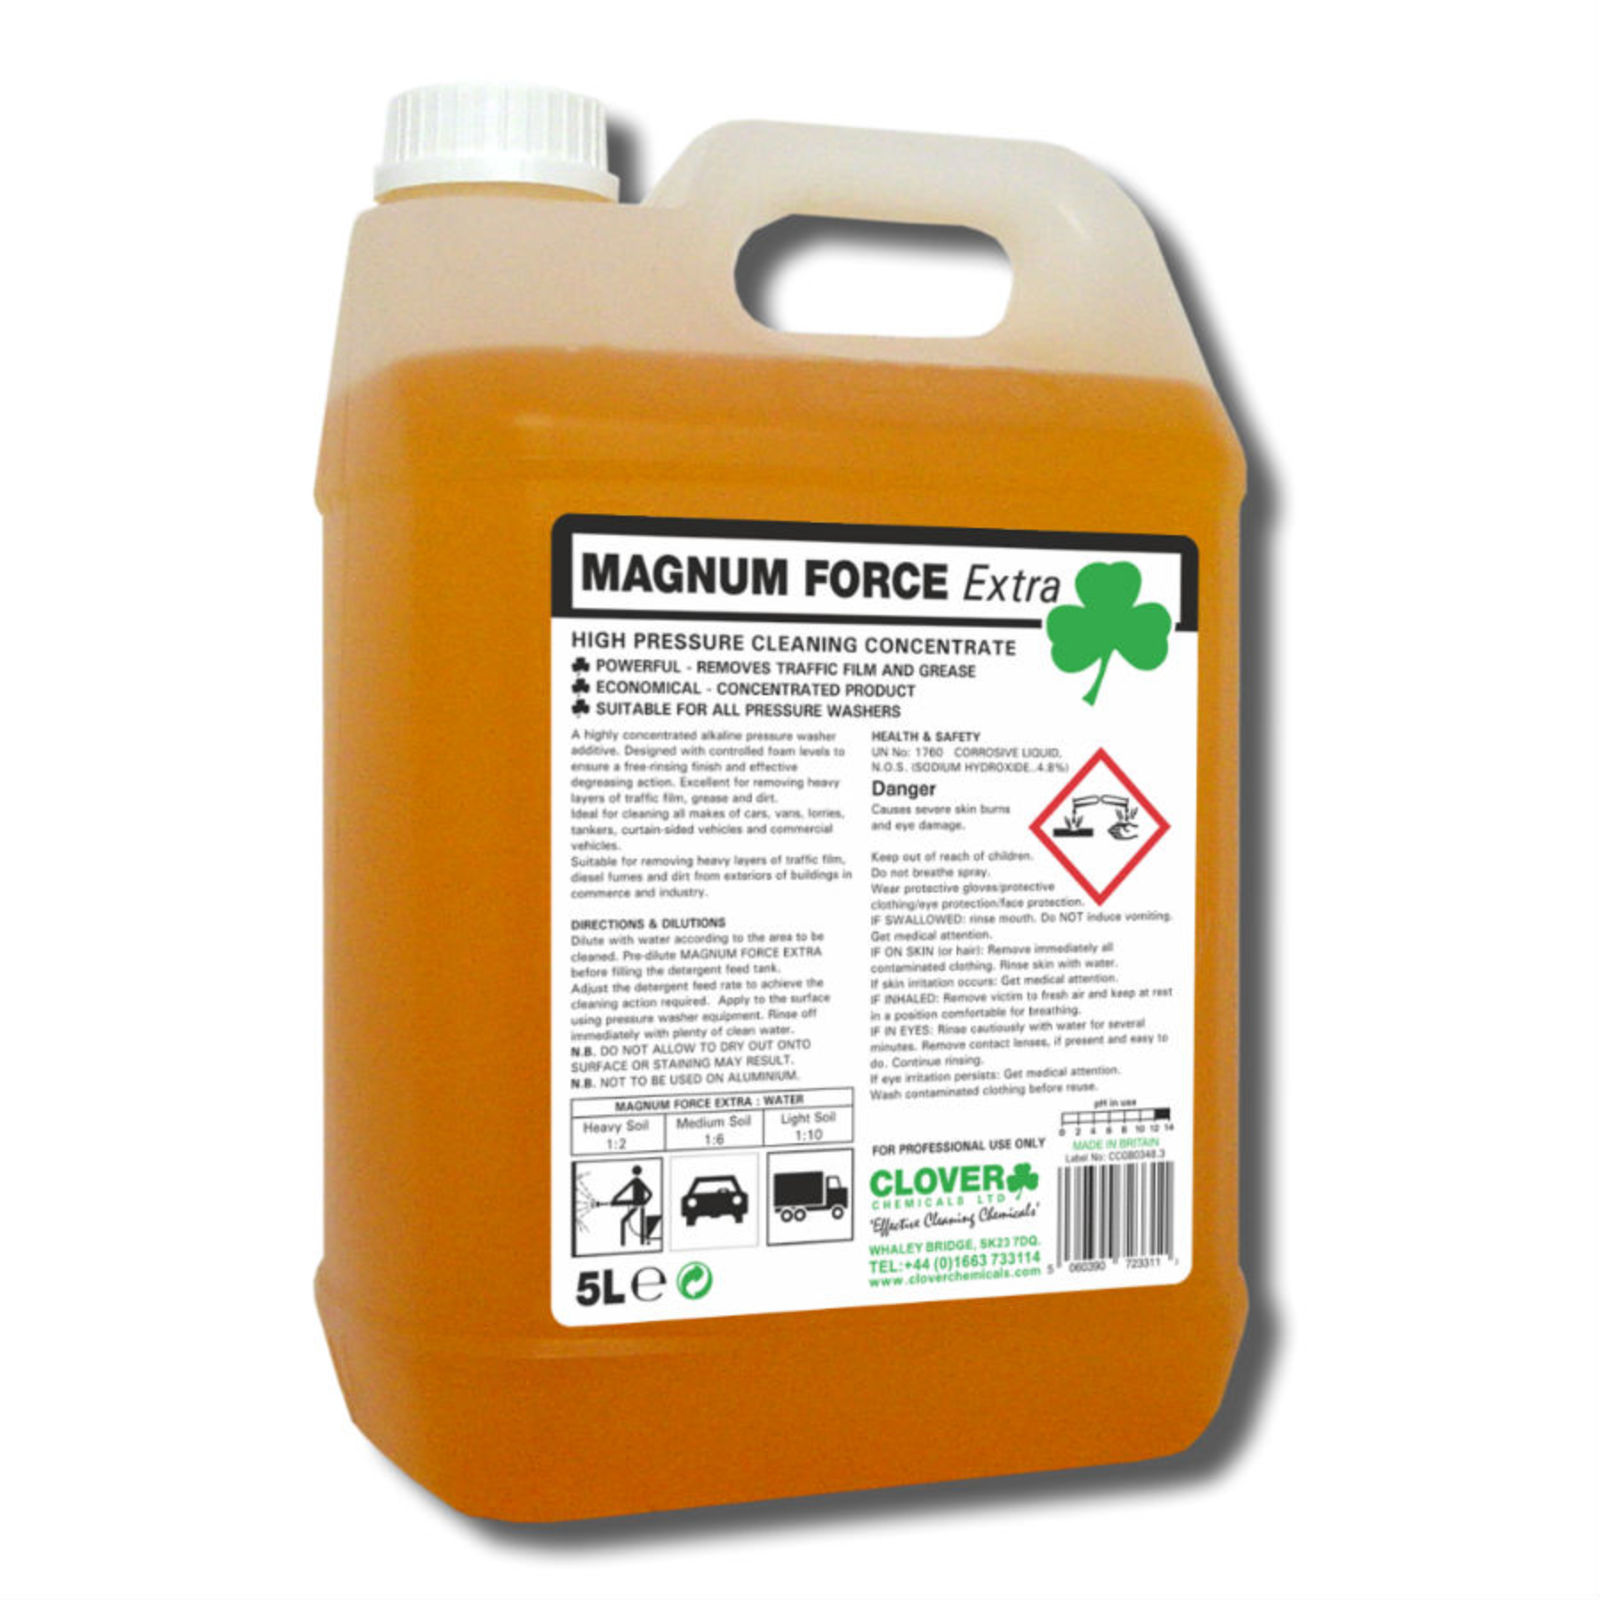 Magnum-Force-Extra---Traffic-film-remover-5litres